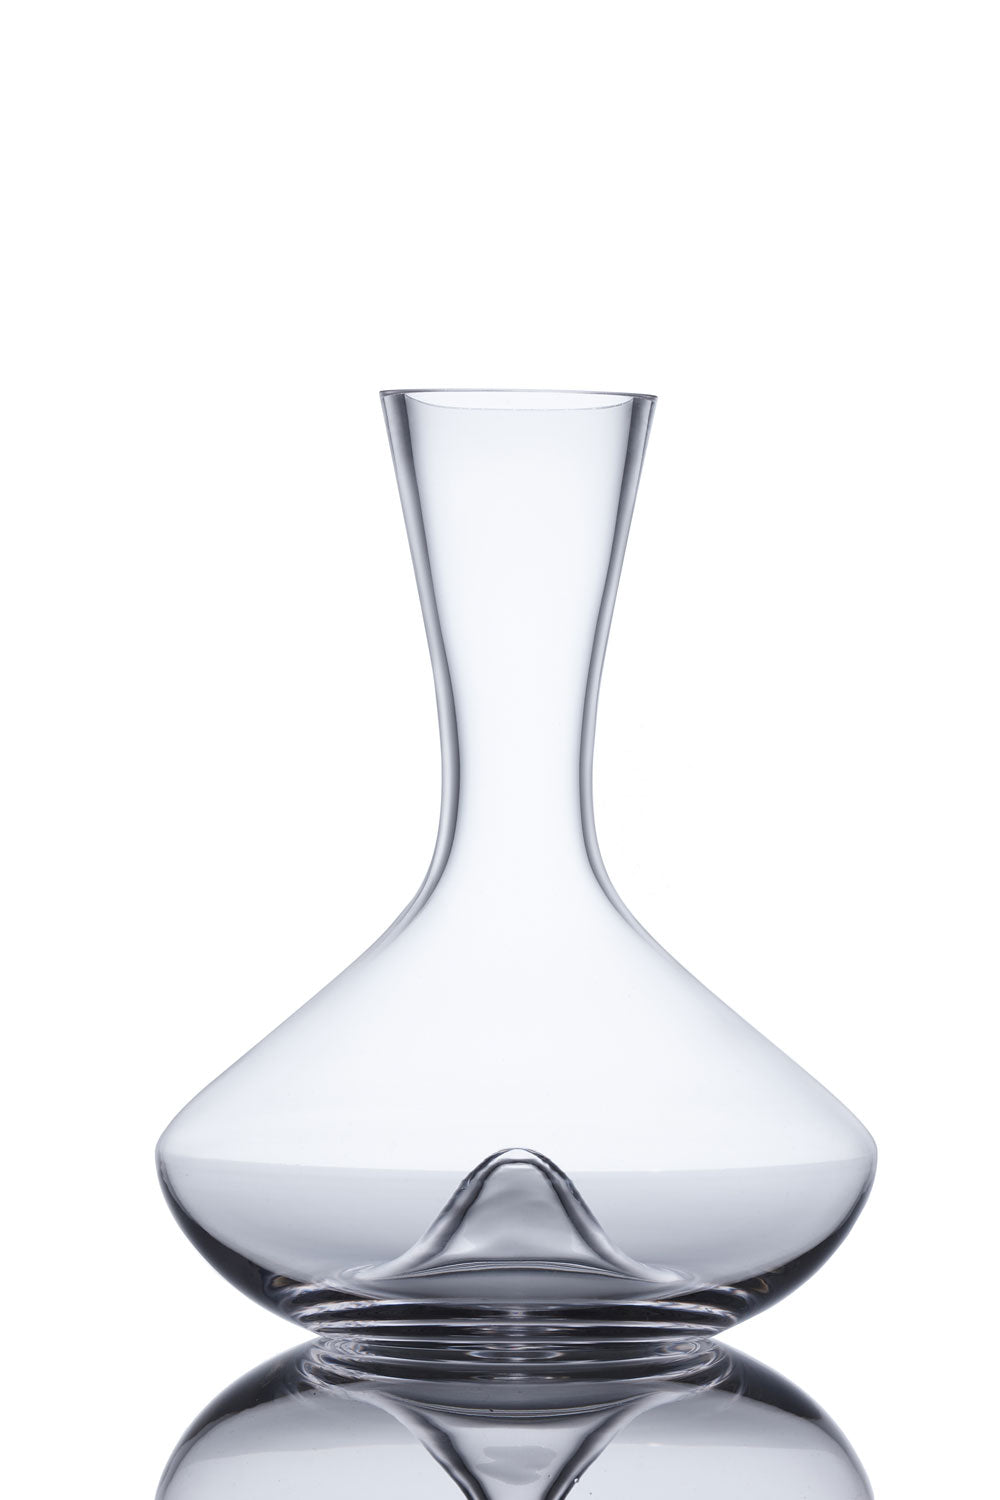 Vintorio Crystal Wine Decanter/Carafe - Citadel Edition